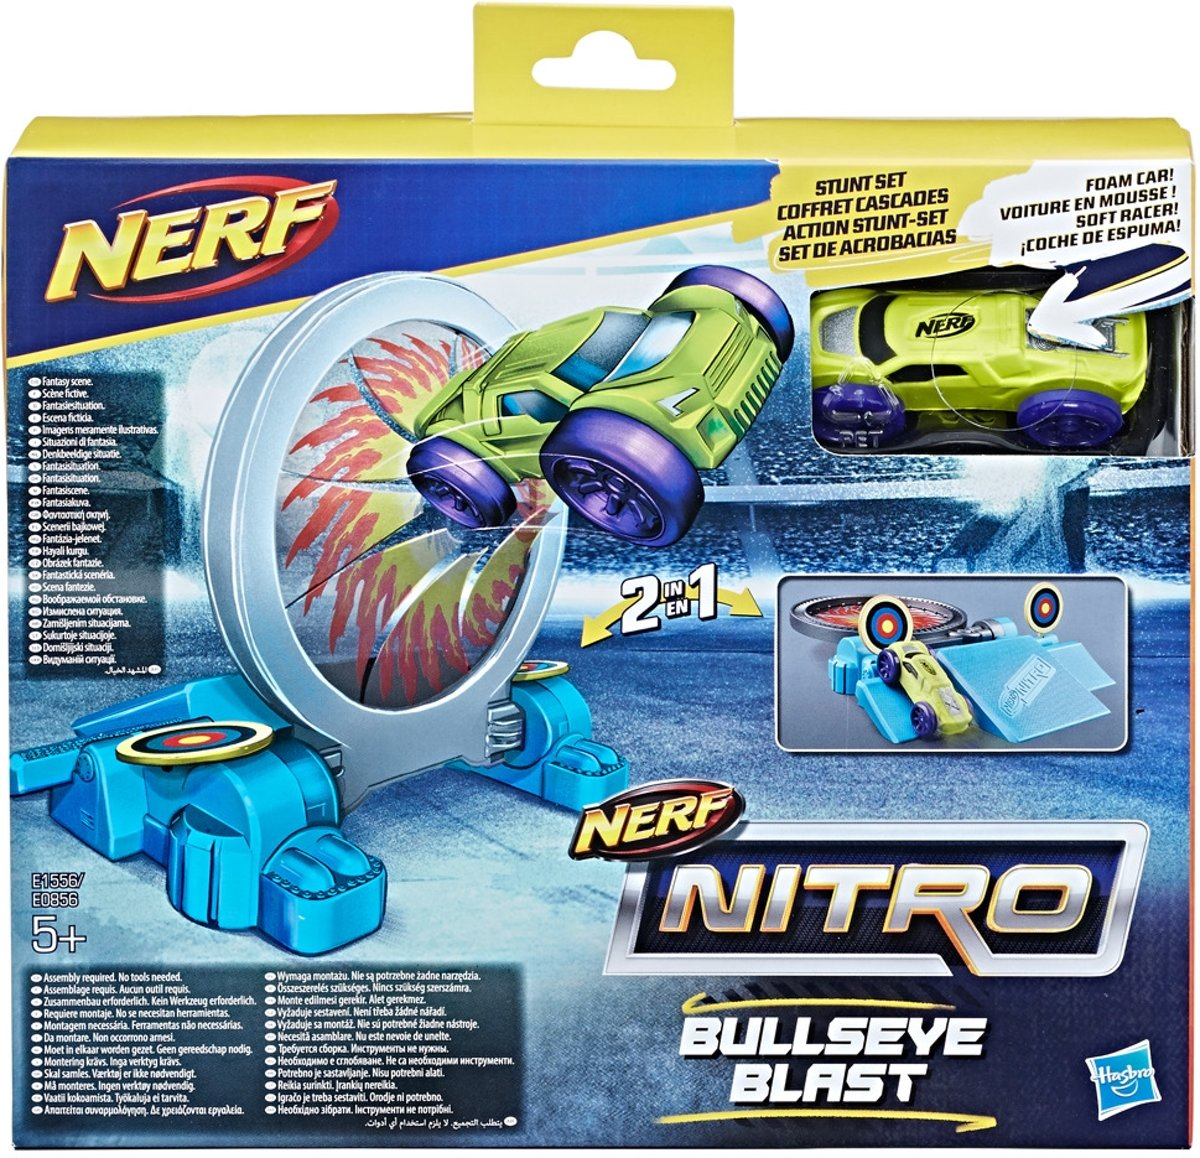 Nerf Nitro 2in1 Stuntsets met Foam Autos Assorti